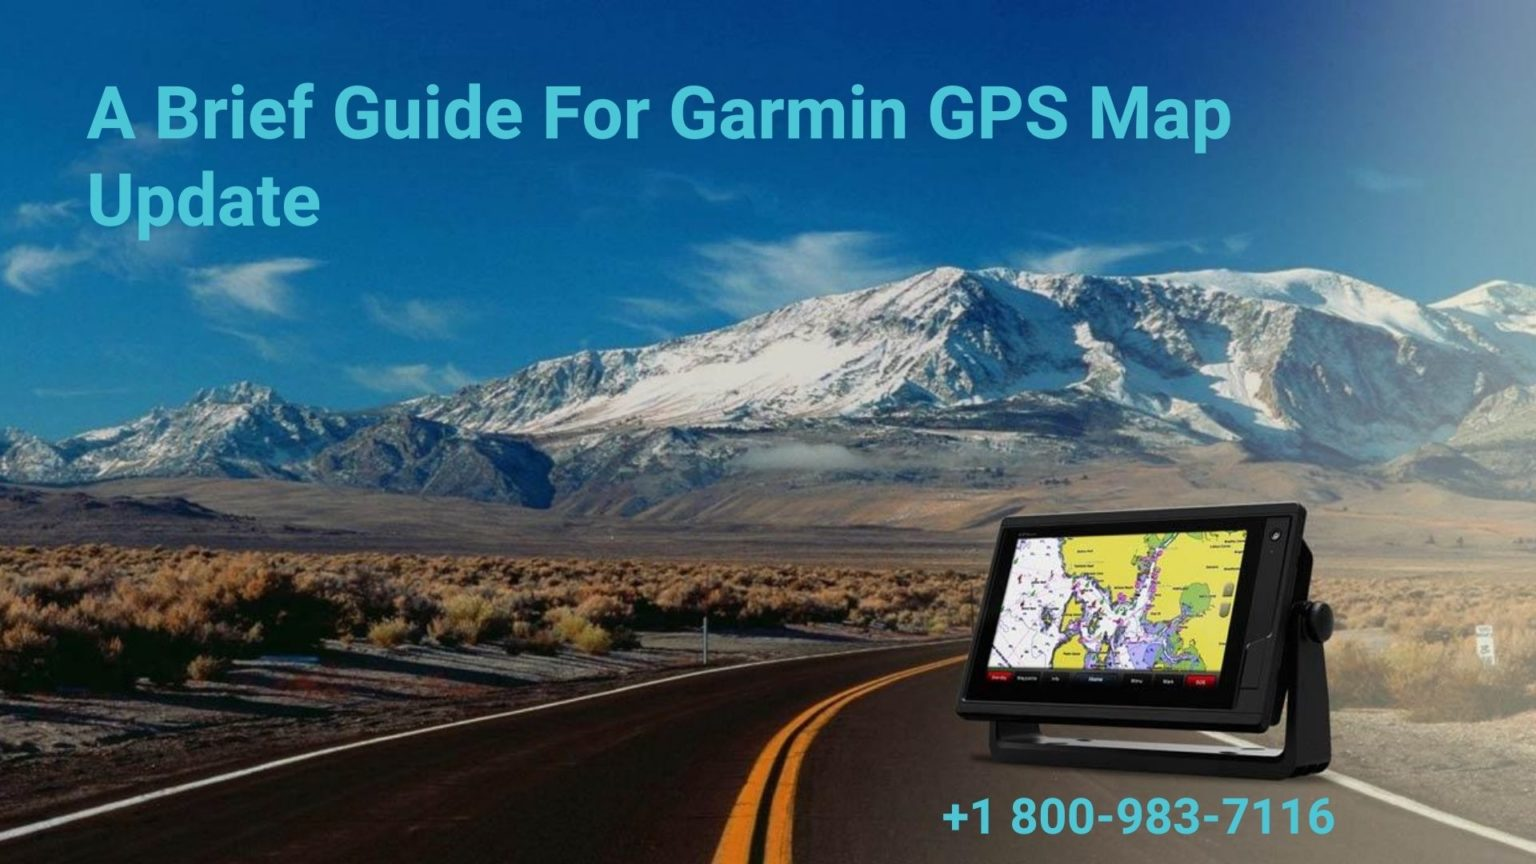 Steps to Update Garmin GPS   18009837116   Here are the steps